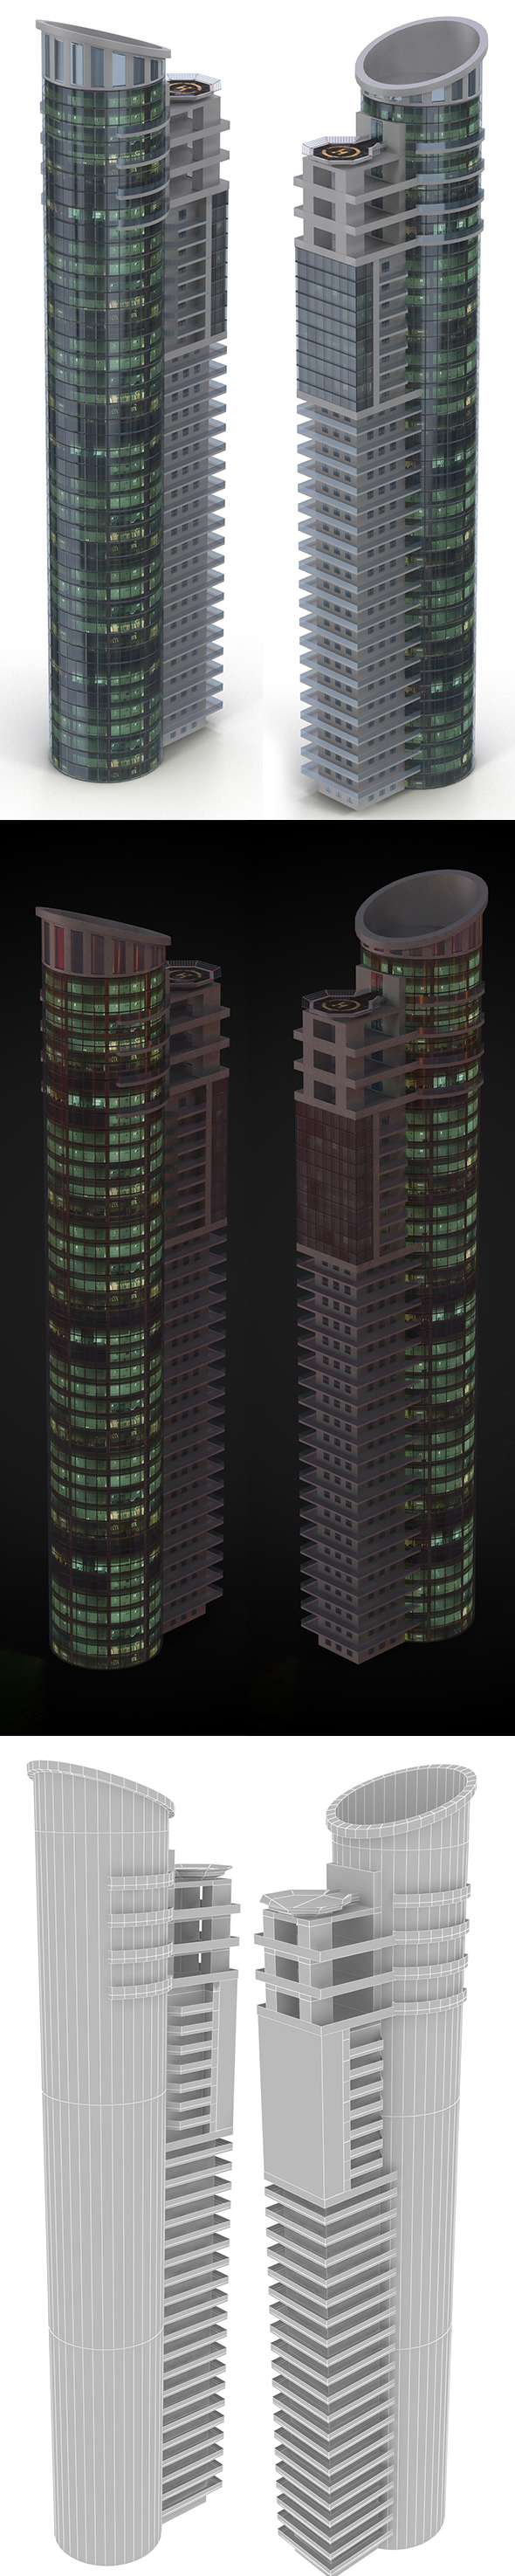 Skyscraper - 3DOcean Item for Sale